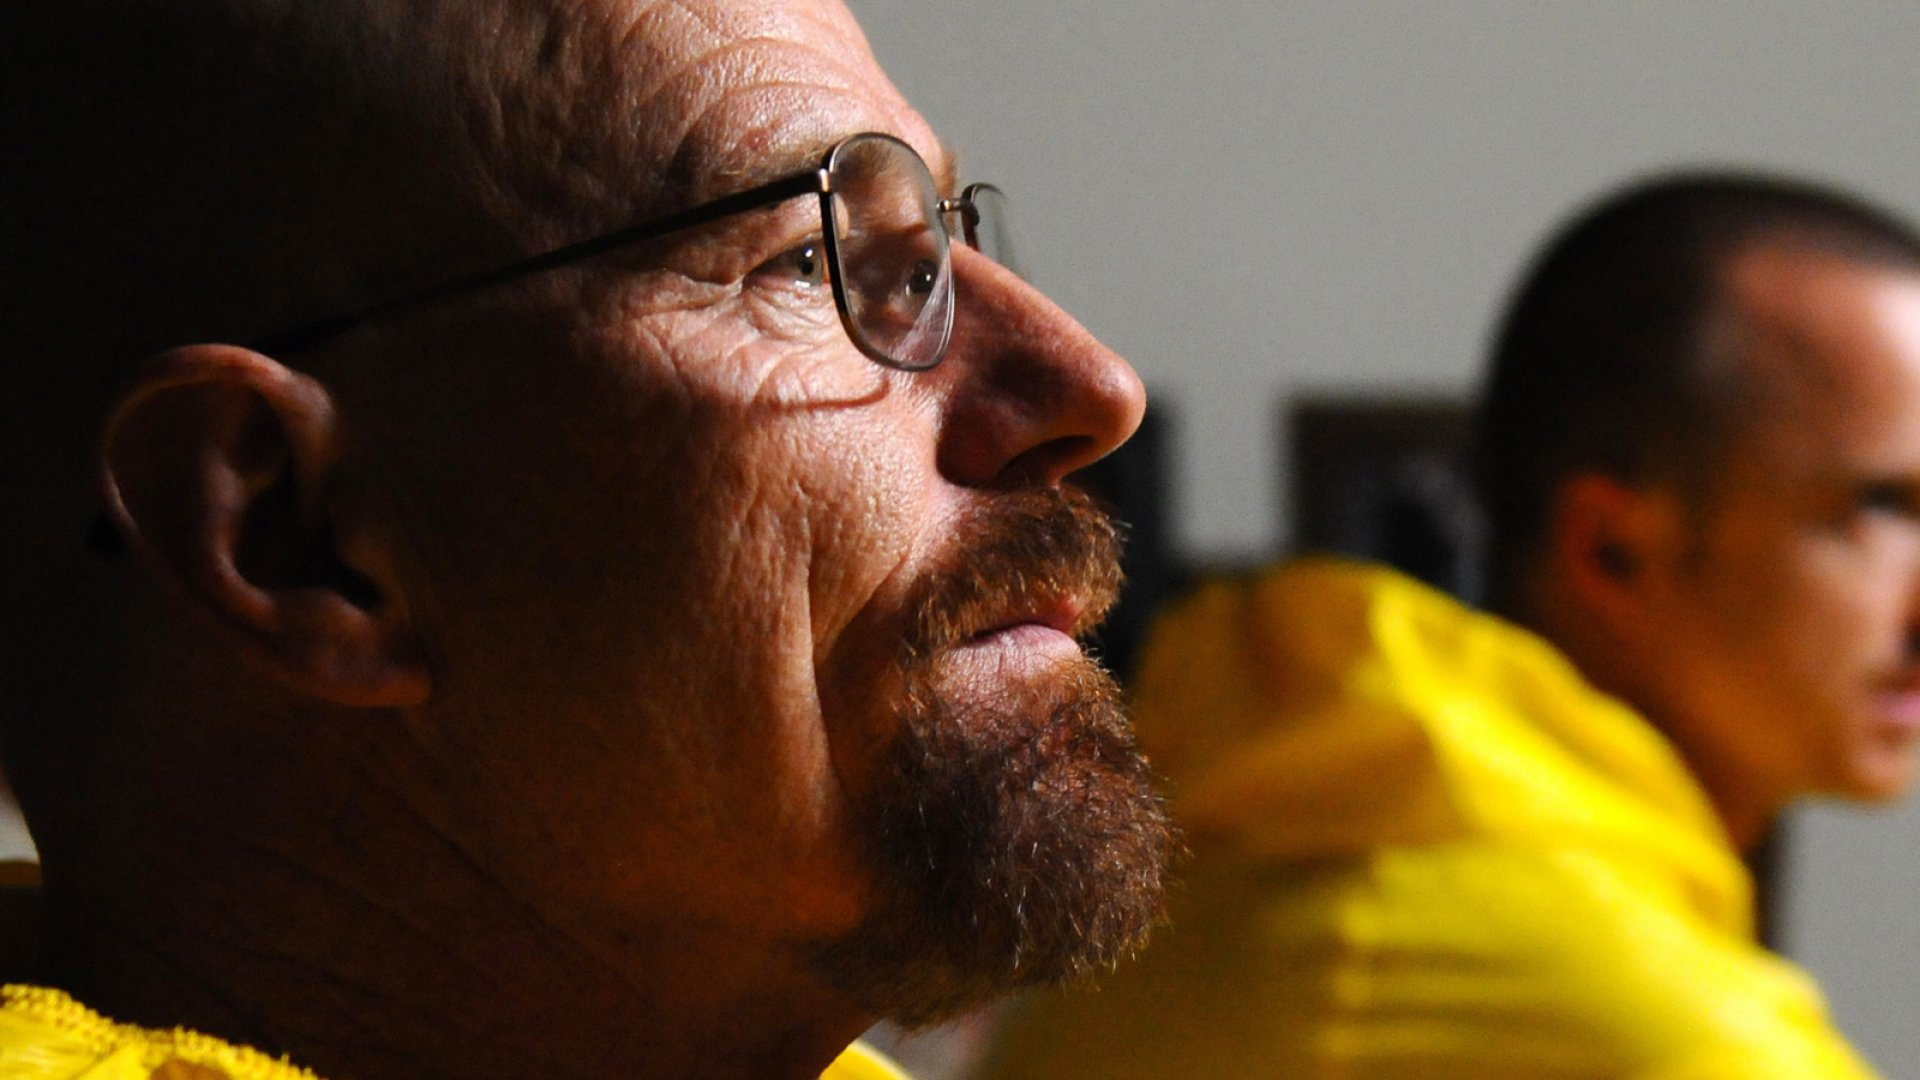 3 Lessons From the 'Breaking Bad' School of Branding